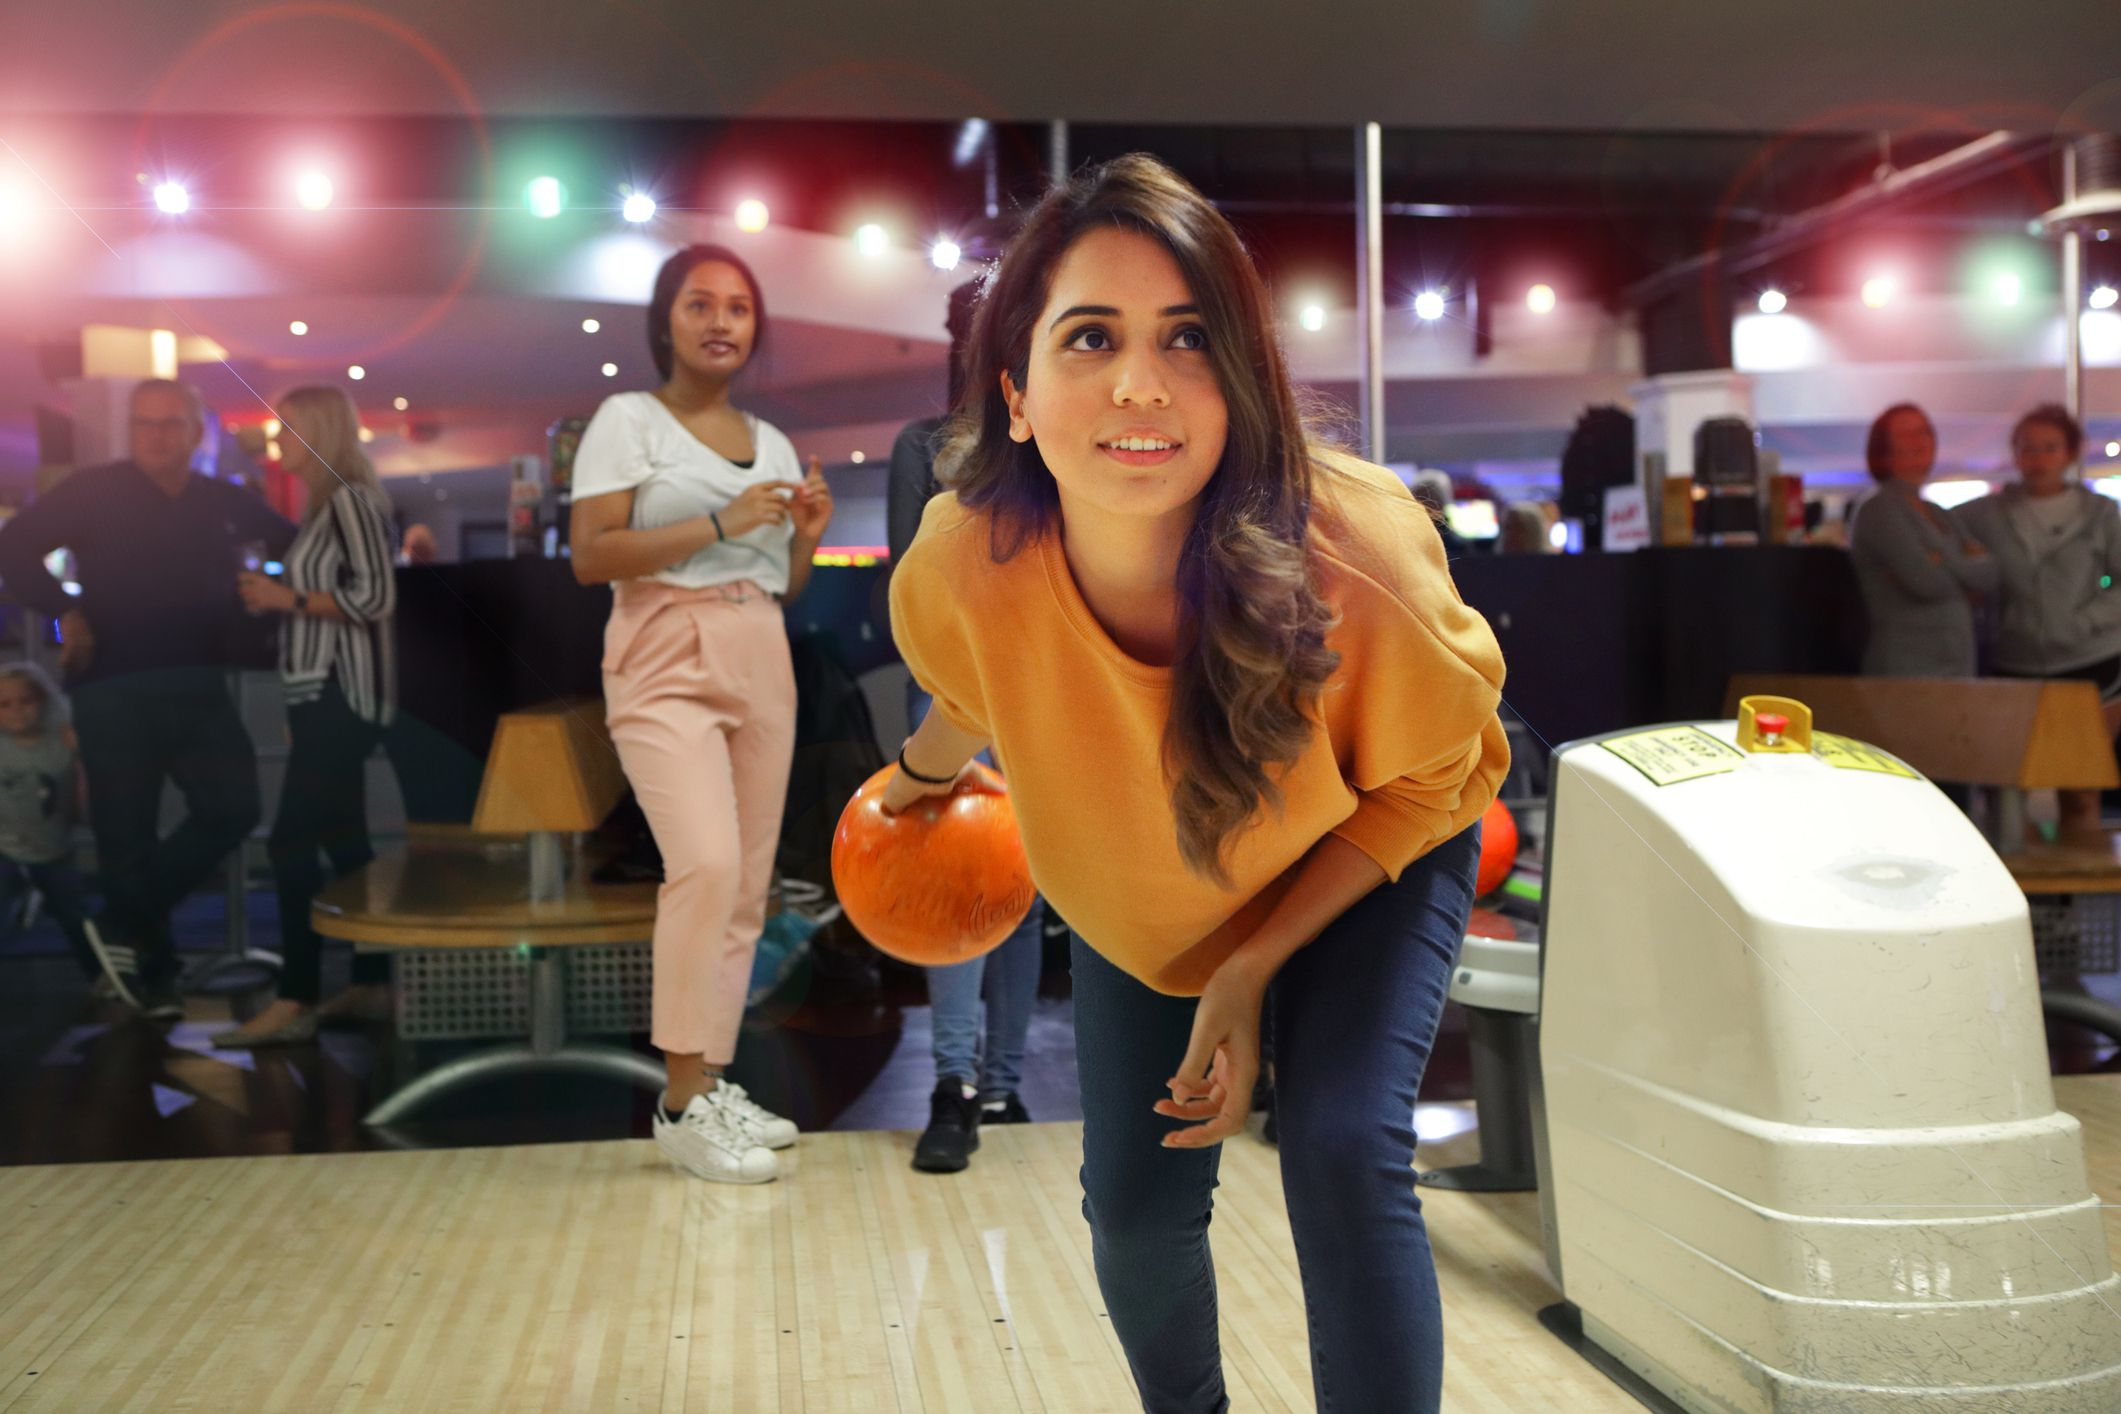 What to wear on bowling date